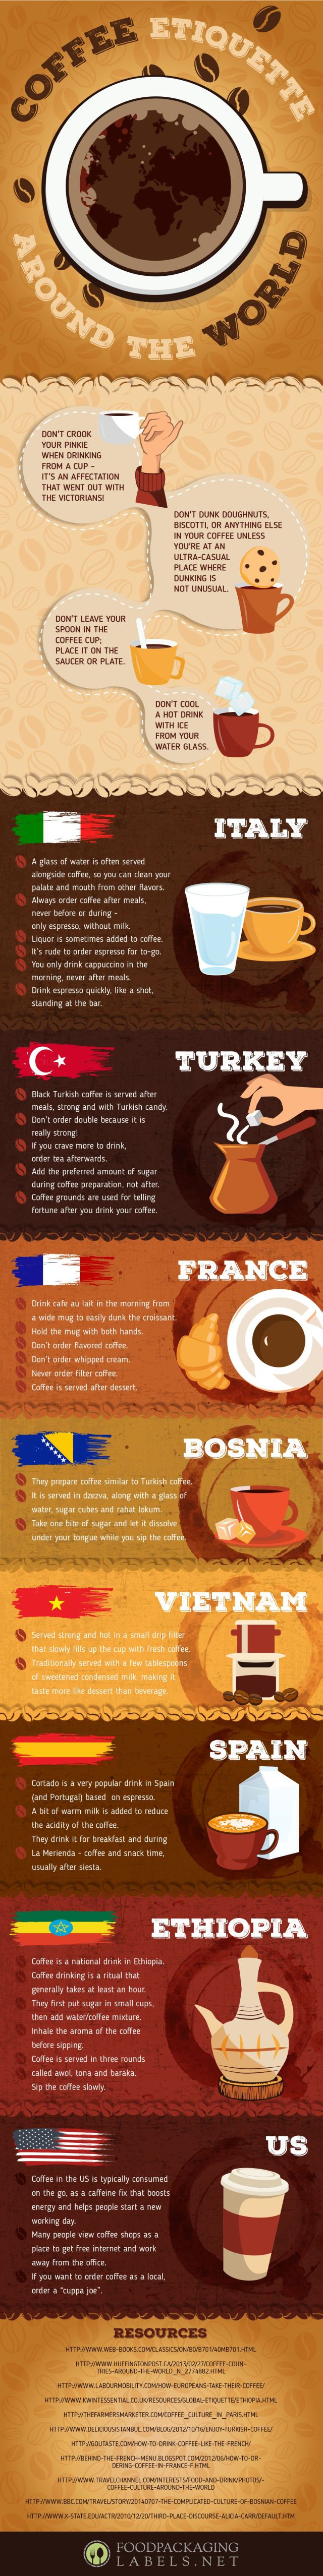 Coffee Etiquette Around the World